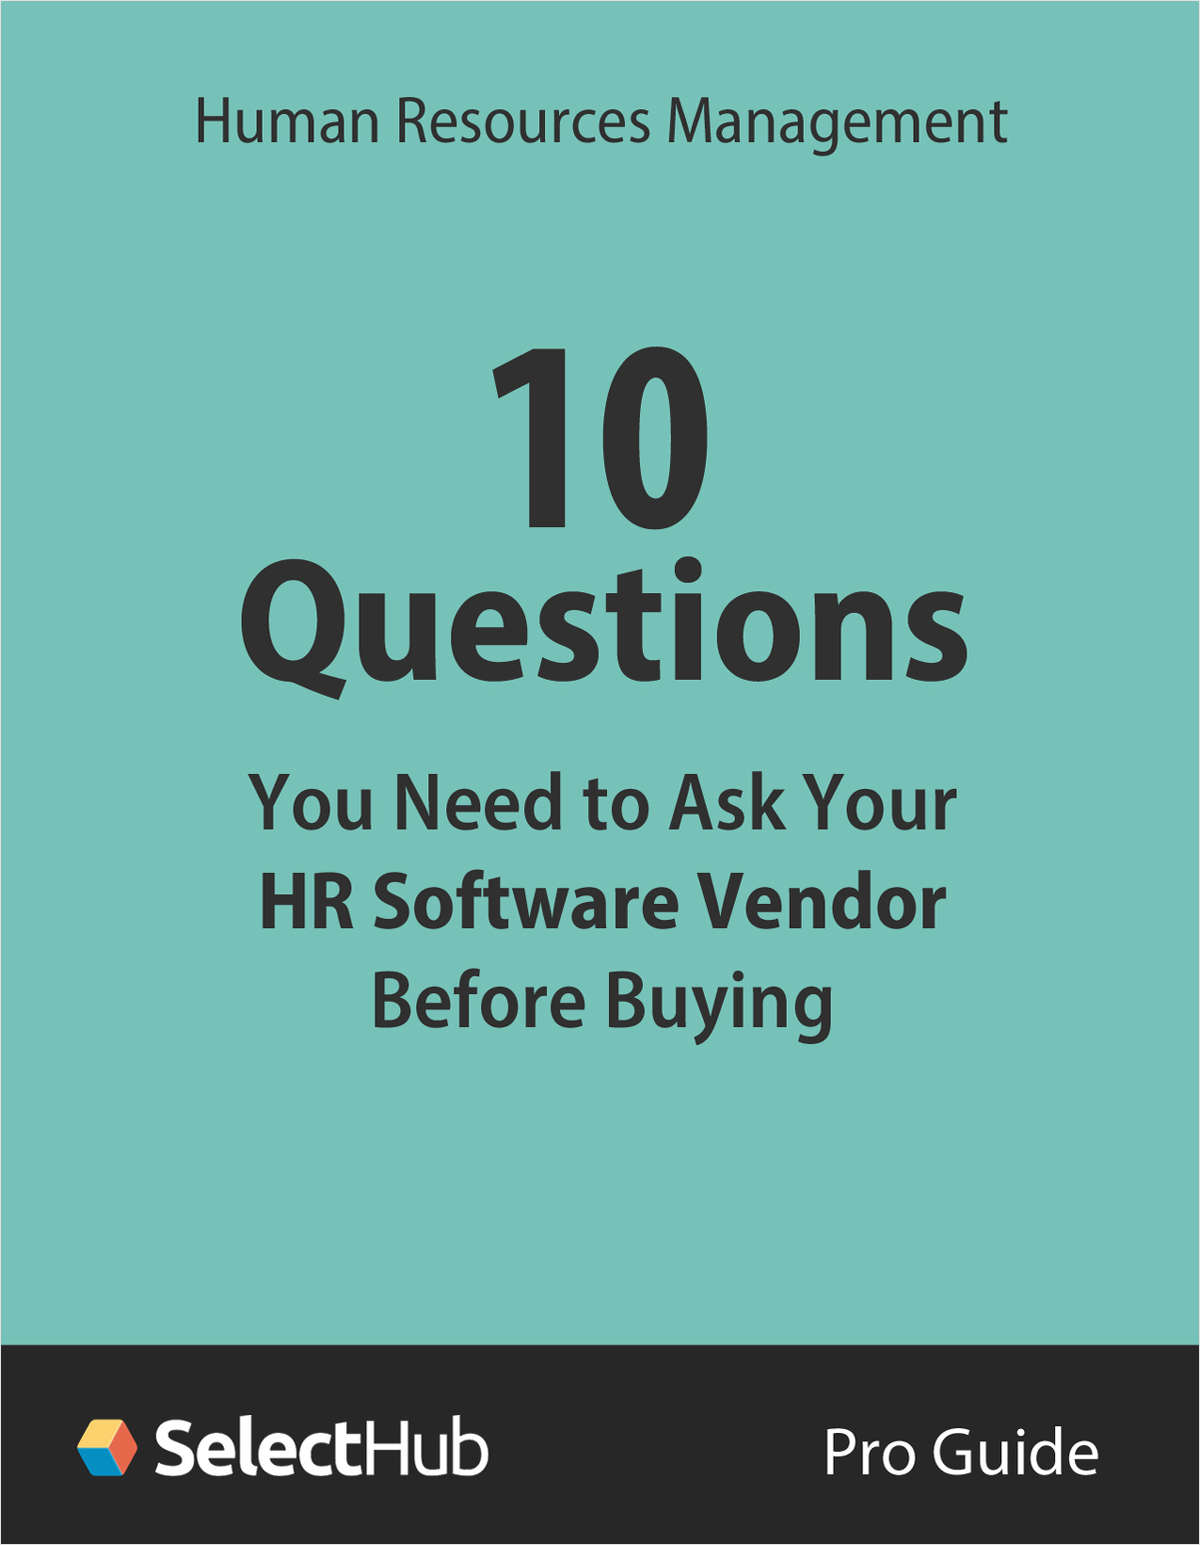 10 Questions You Need to Ask Your HR Software Vendor Before Buying